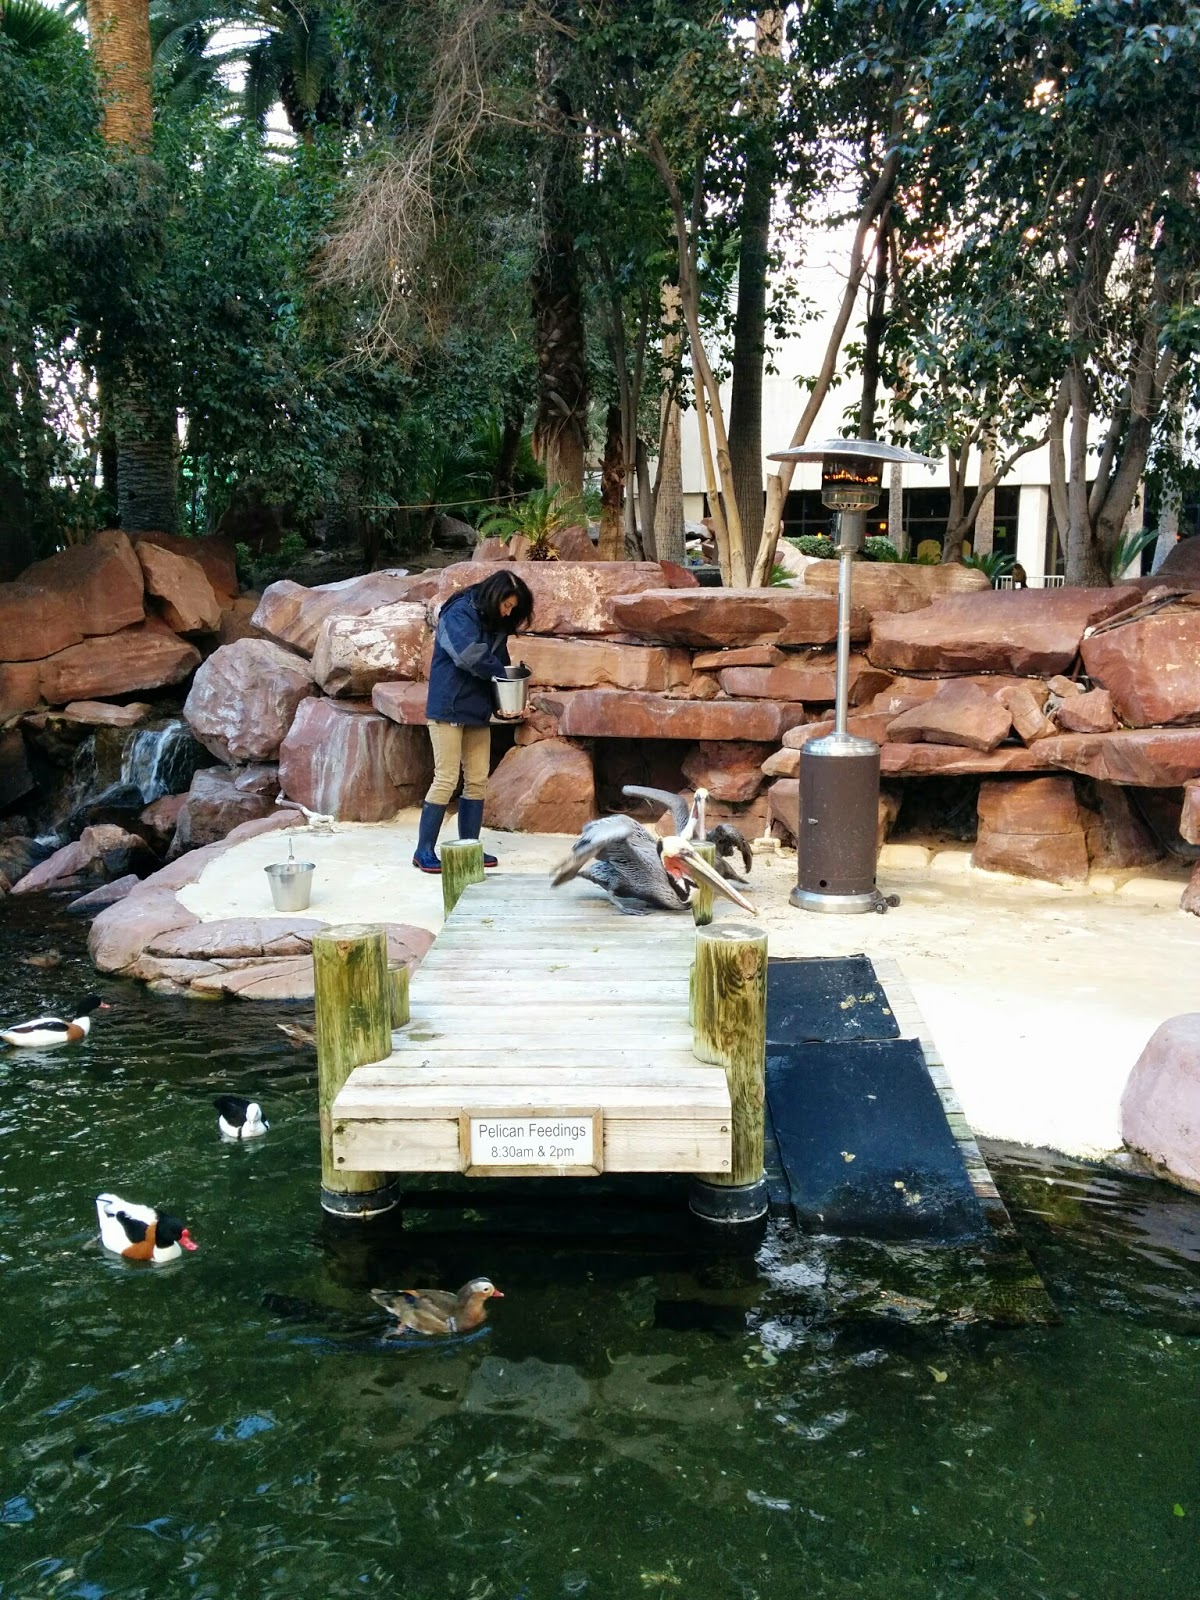 Pelican Feeding at the Wildlife Habitat at The Flamingo | Las Vegas